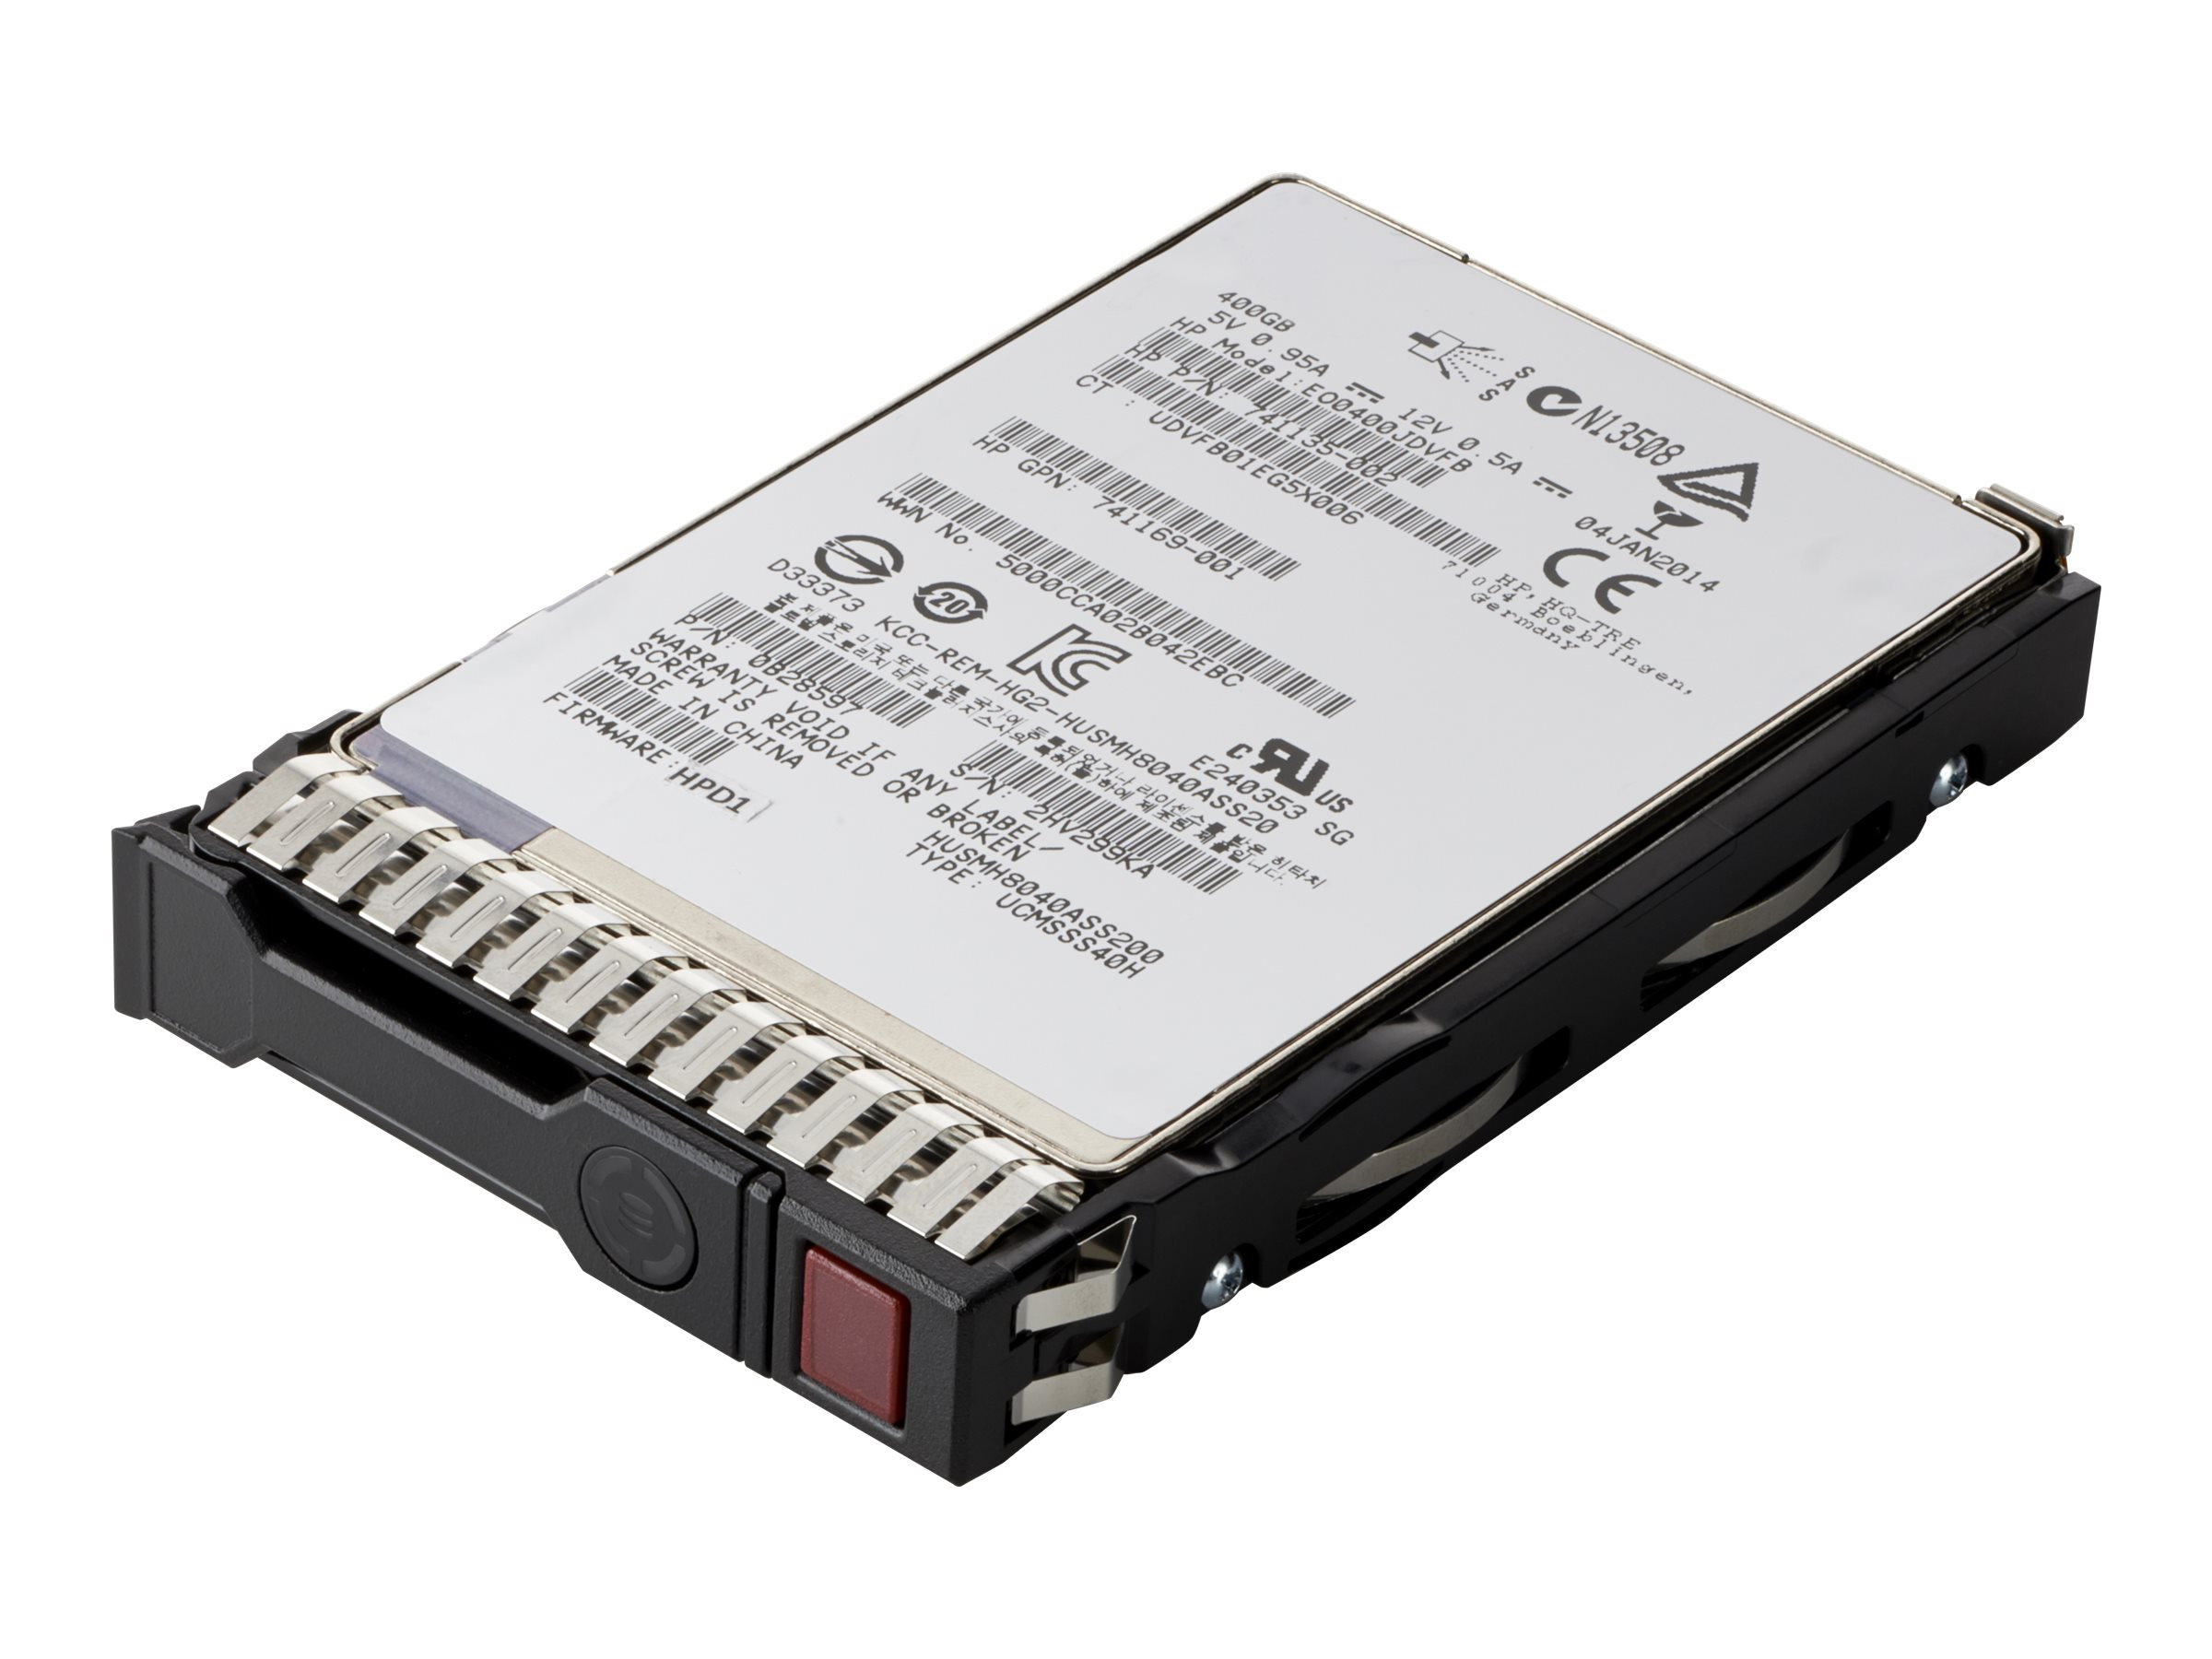 HPE Mixed Use - solid state drive - 1.92 TB - SATA 6Gb/s -